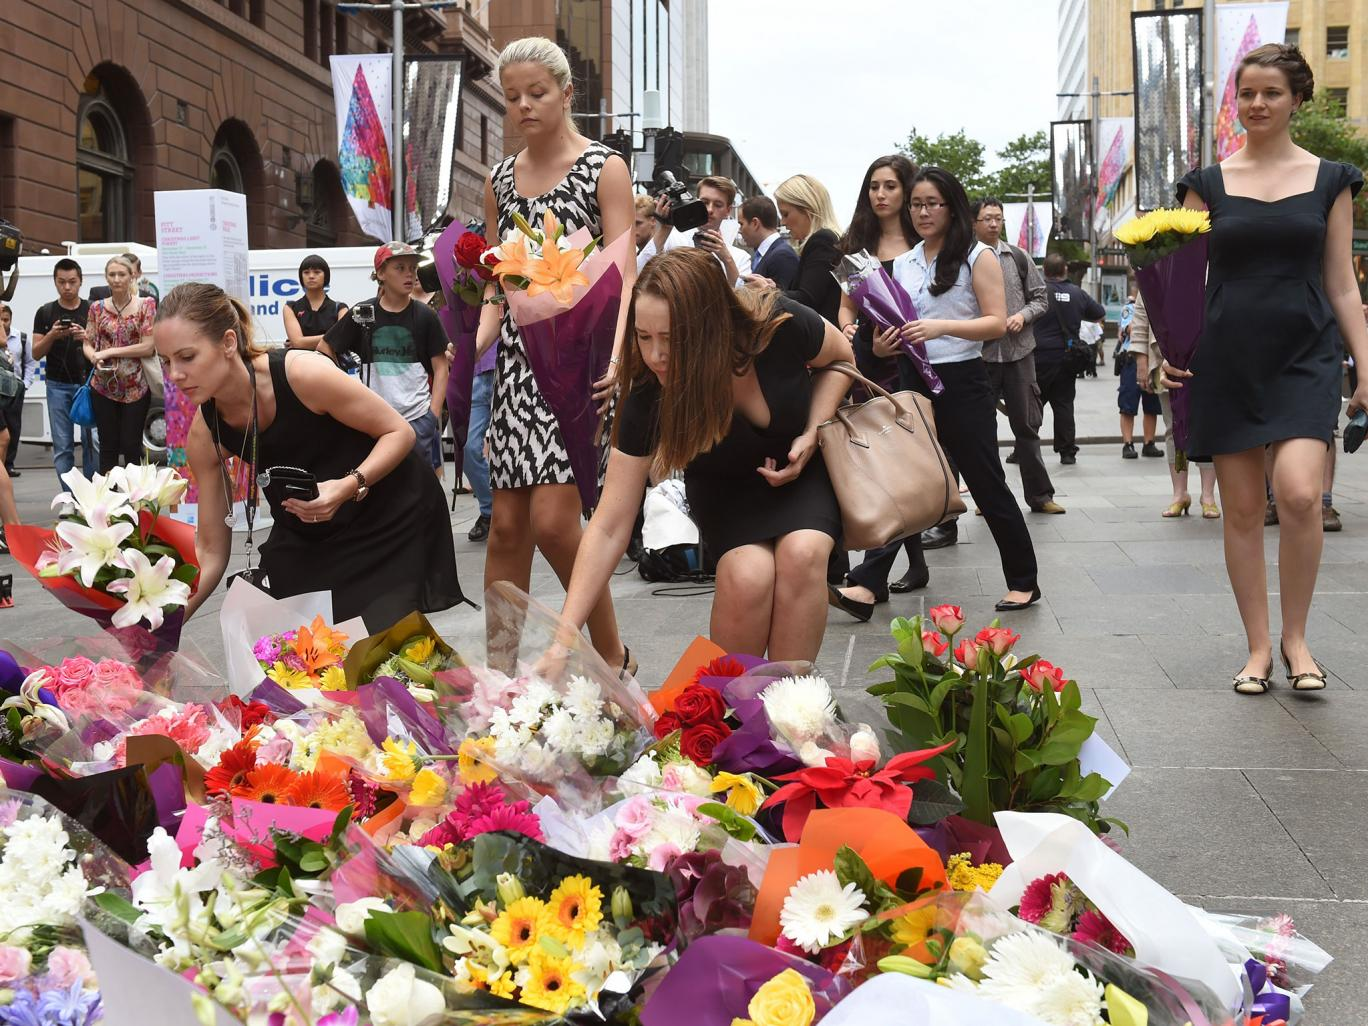 People lay flowers at a floral memorial at the scene of Sydney&;s siege